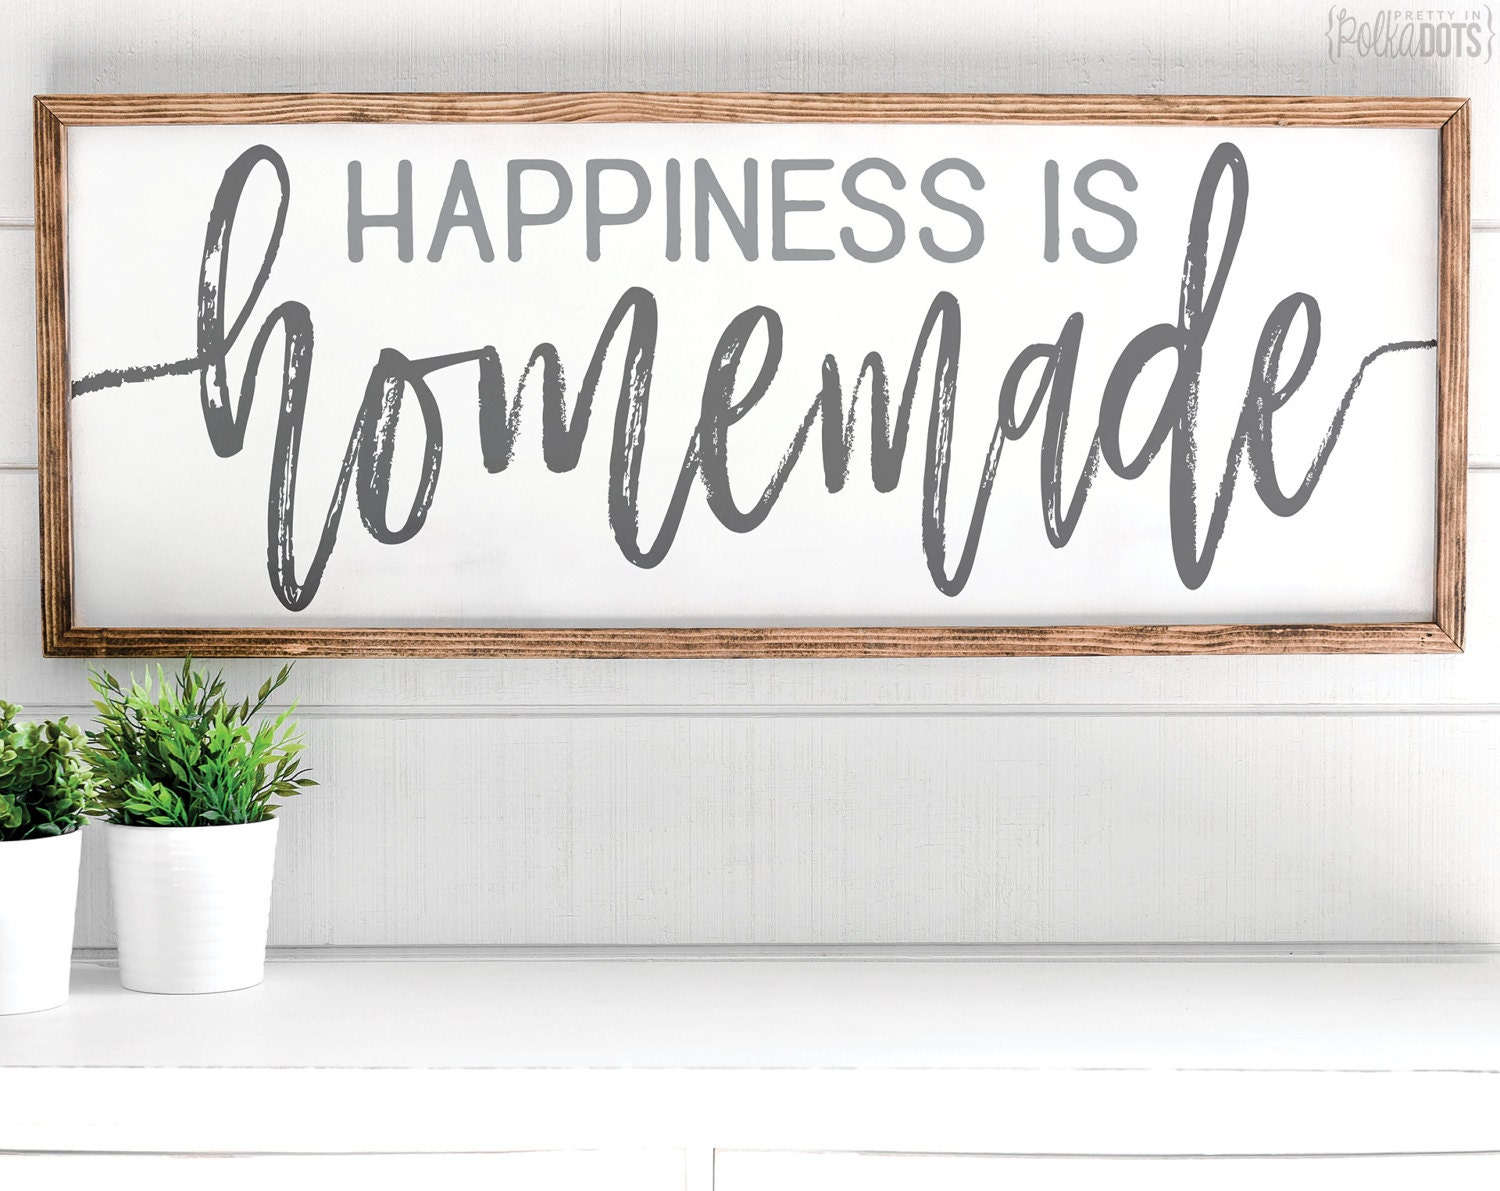 Stupendous image in homemade happiness